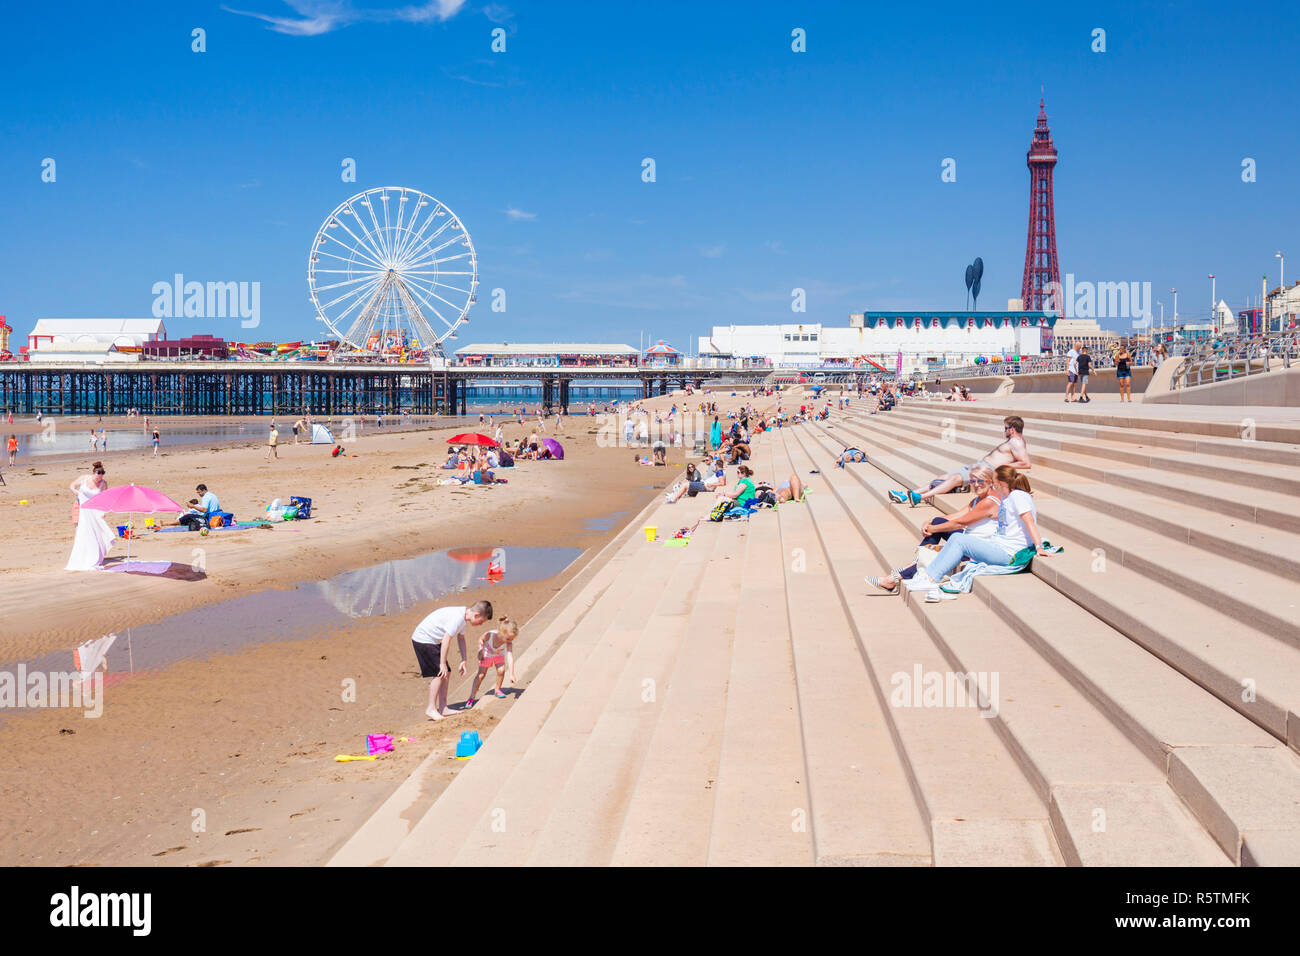 Blackpool beach summer Blackpool tower and central pier Blackpool uk with people on the sandy beach Blackpool Lancashire England UK GB Europe - Stock Image